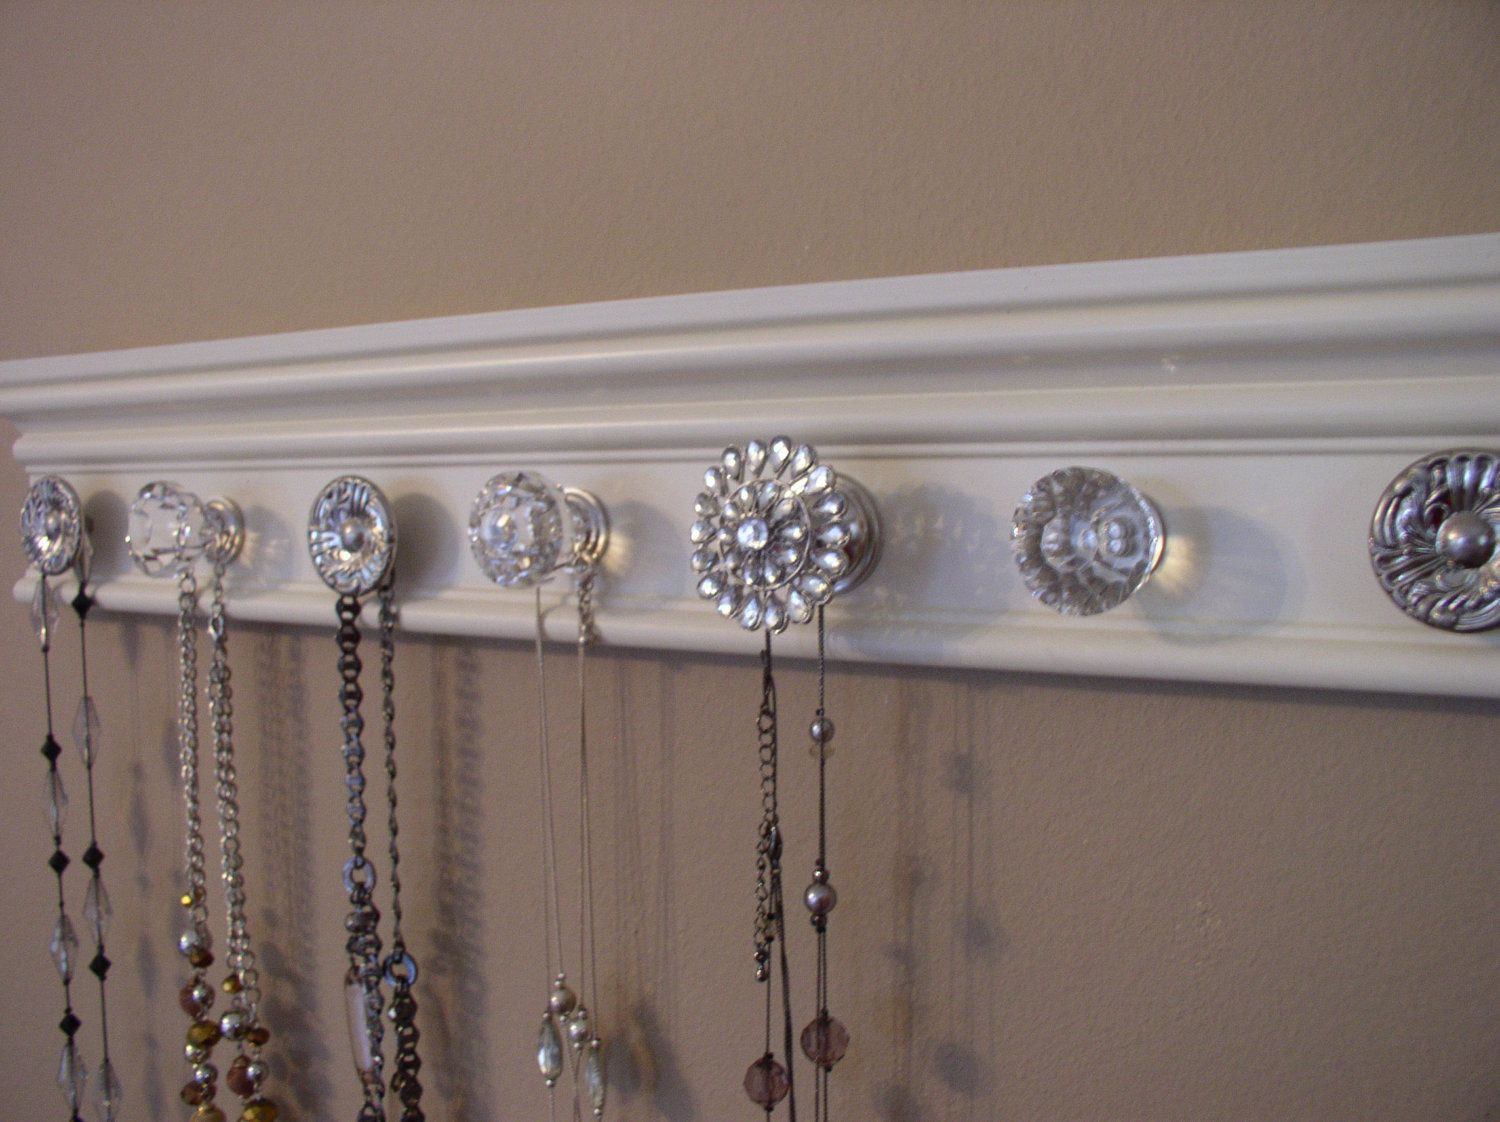 YOU CHOOSE 5,7 or 9 KNOBS for this wall necklace organizer w/ a ...